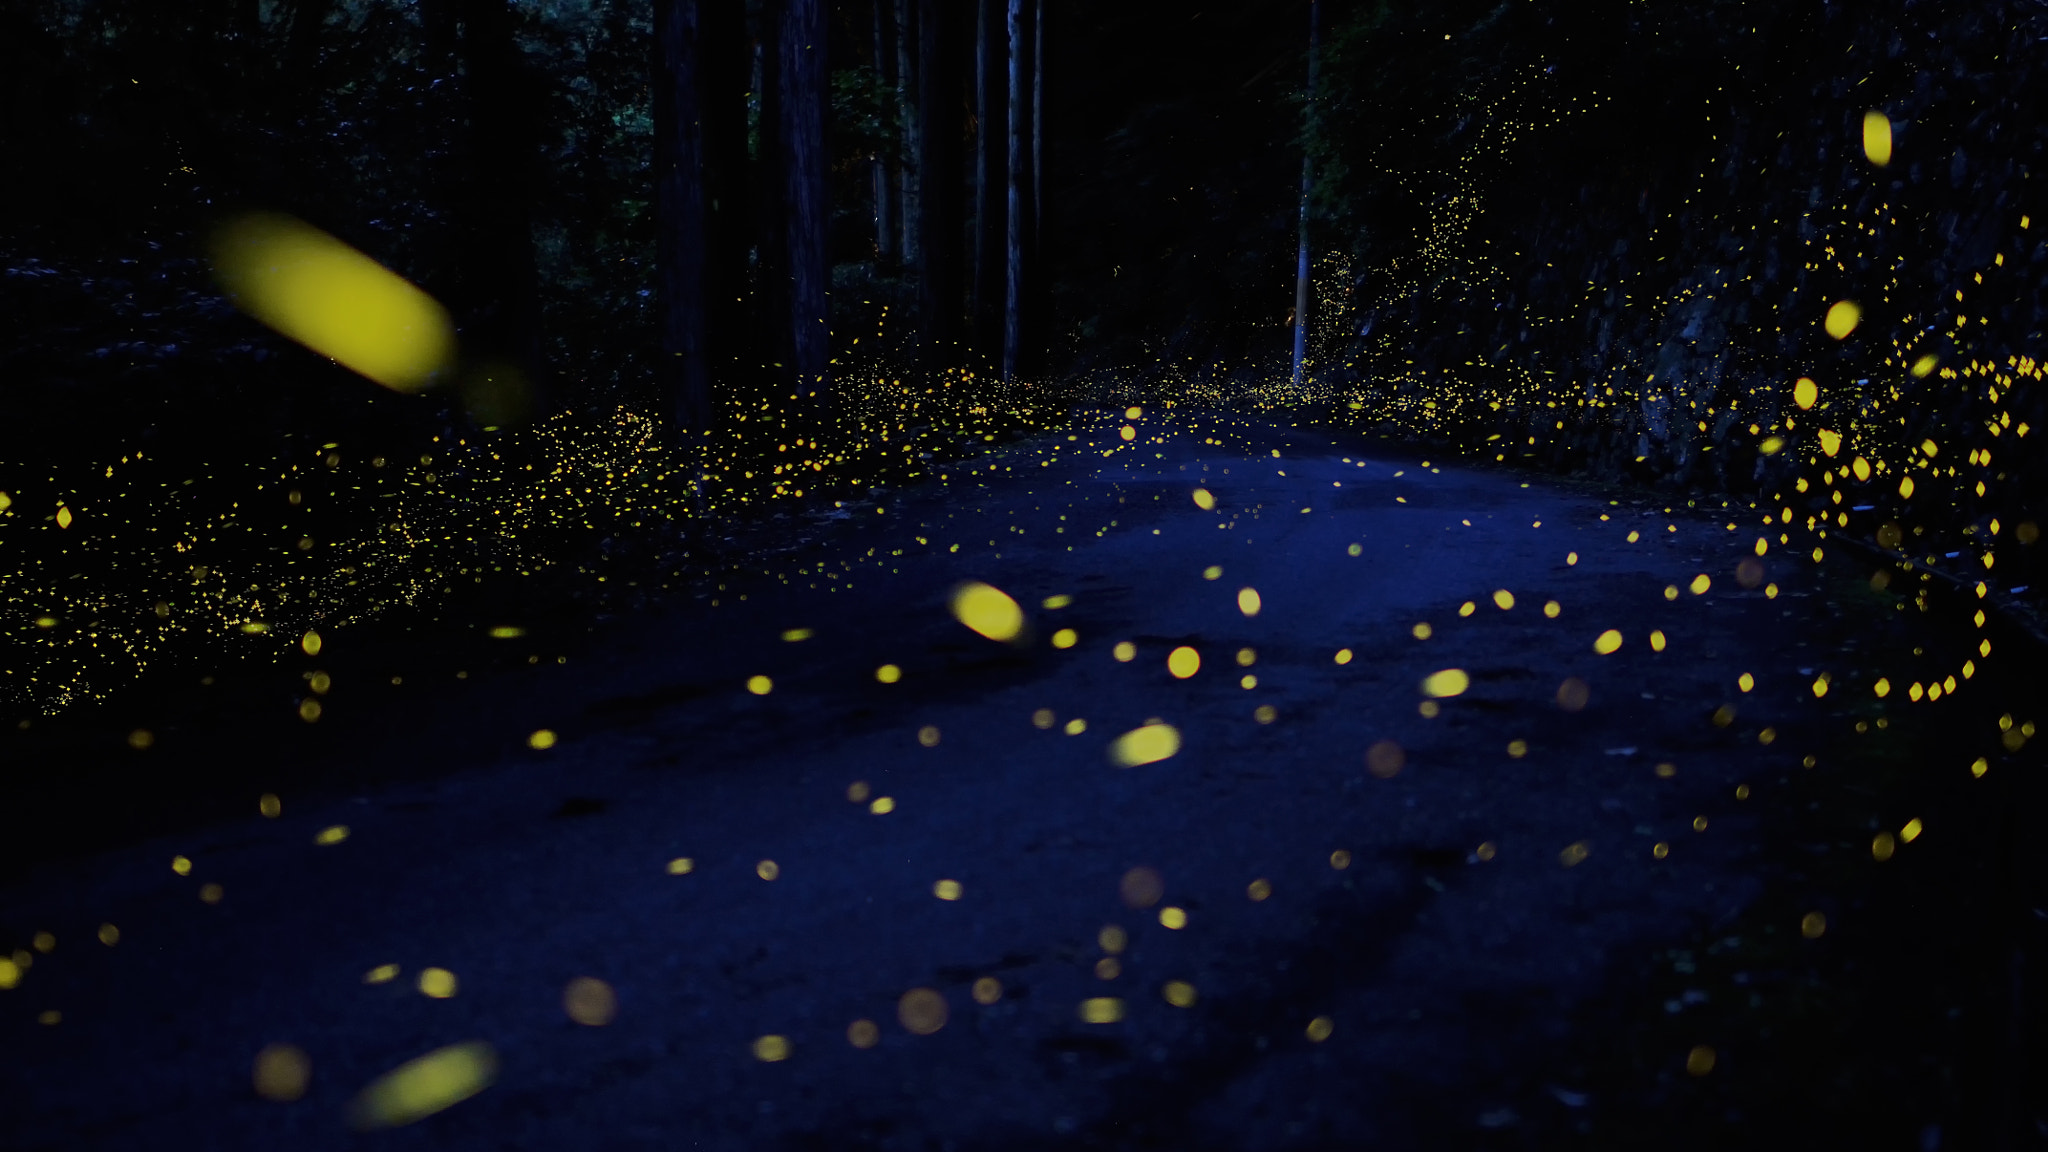 Photograph Firefly Road by Tsuneaki Hiramatsu on 500px